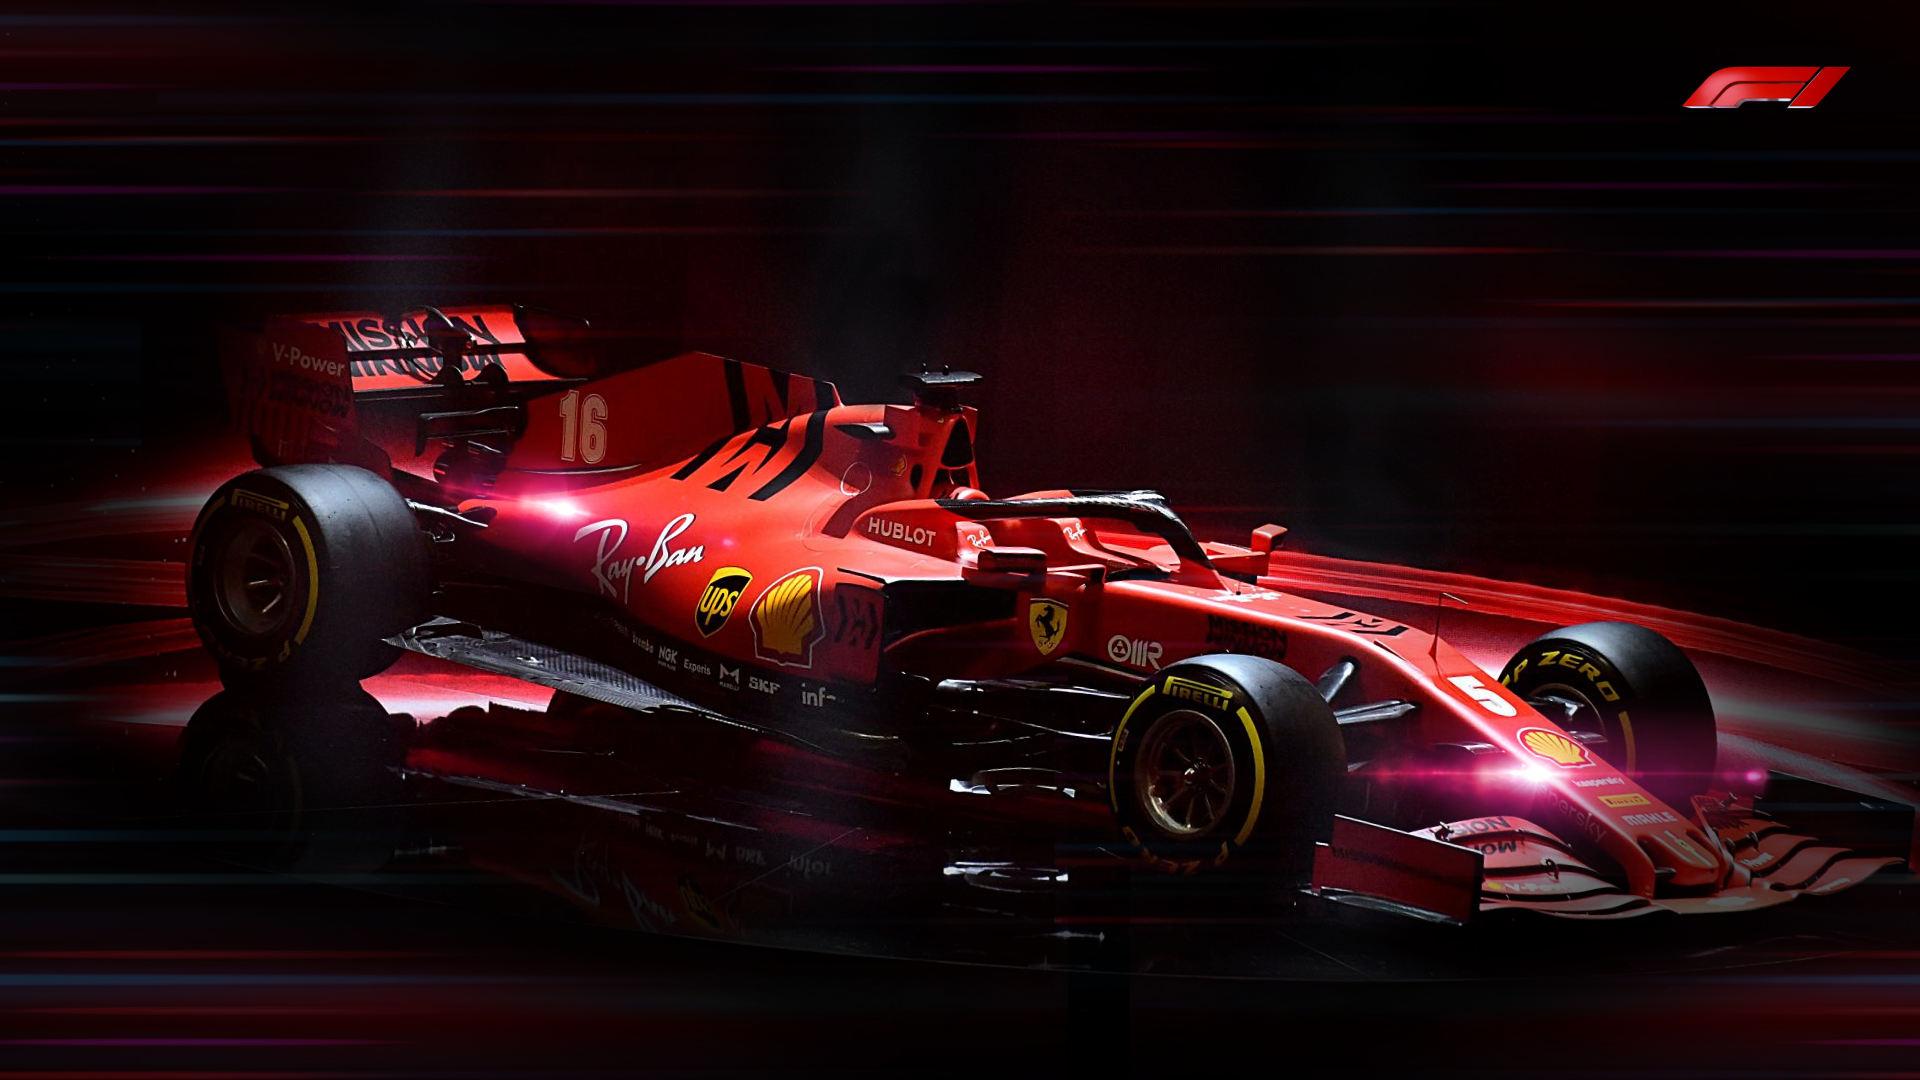 Ferrari 2020 Sf1000 F1 Car Wallpaper